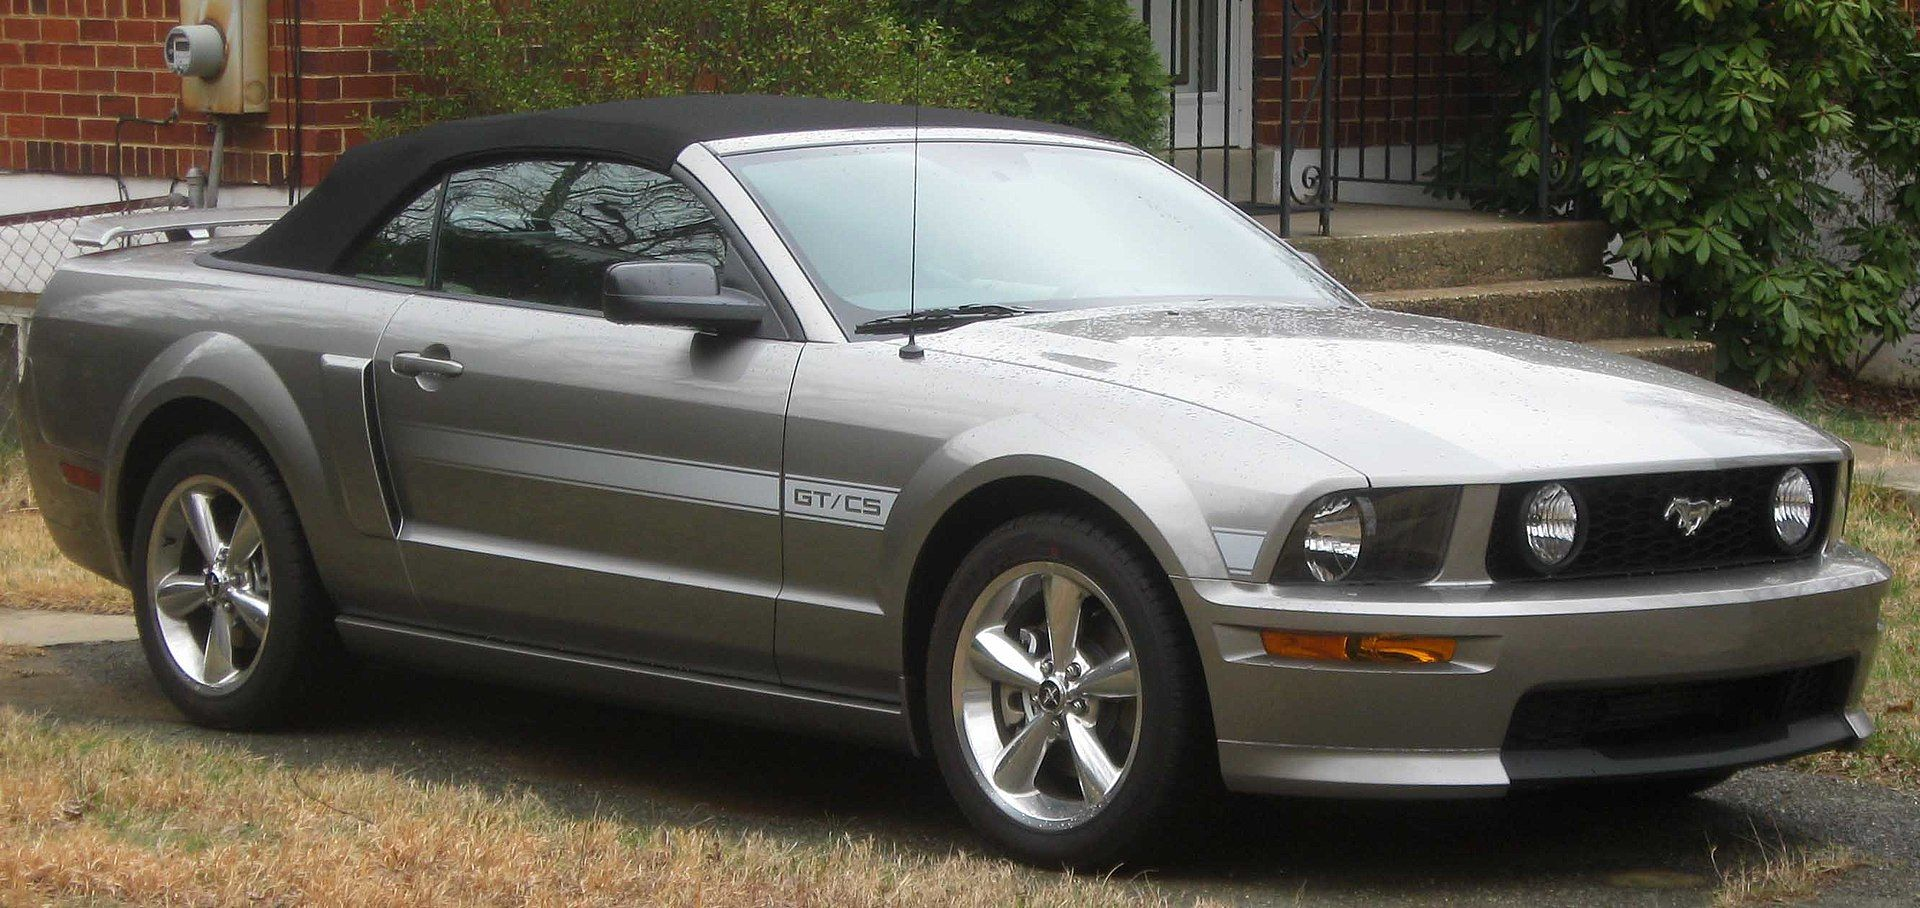 Ford Mustang Gt Cs Convertible Ford Mustang Wikipedia Ford Mustang Gt Ford Mustang Mustang Gt